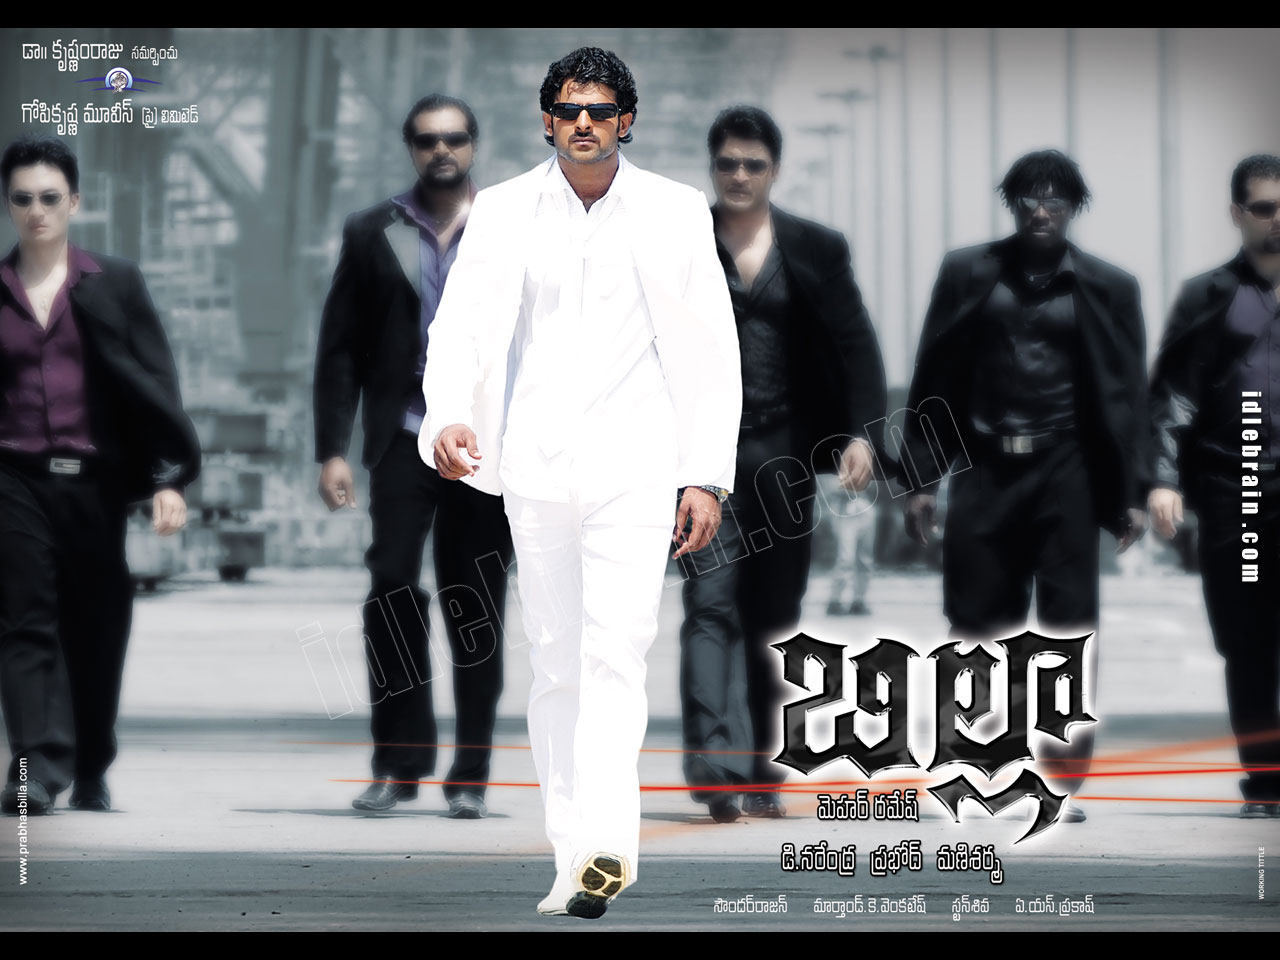 Billa - Telugu film wallpapers - Telugu cinema